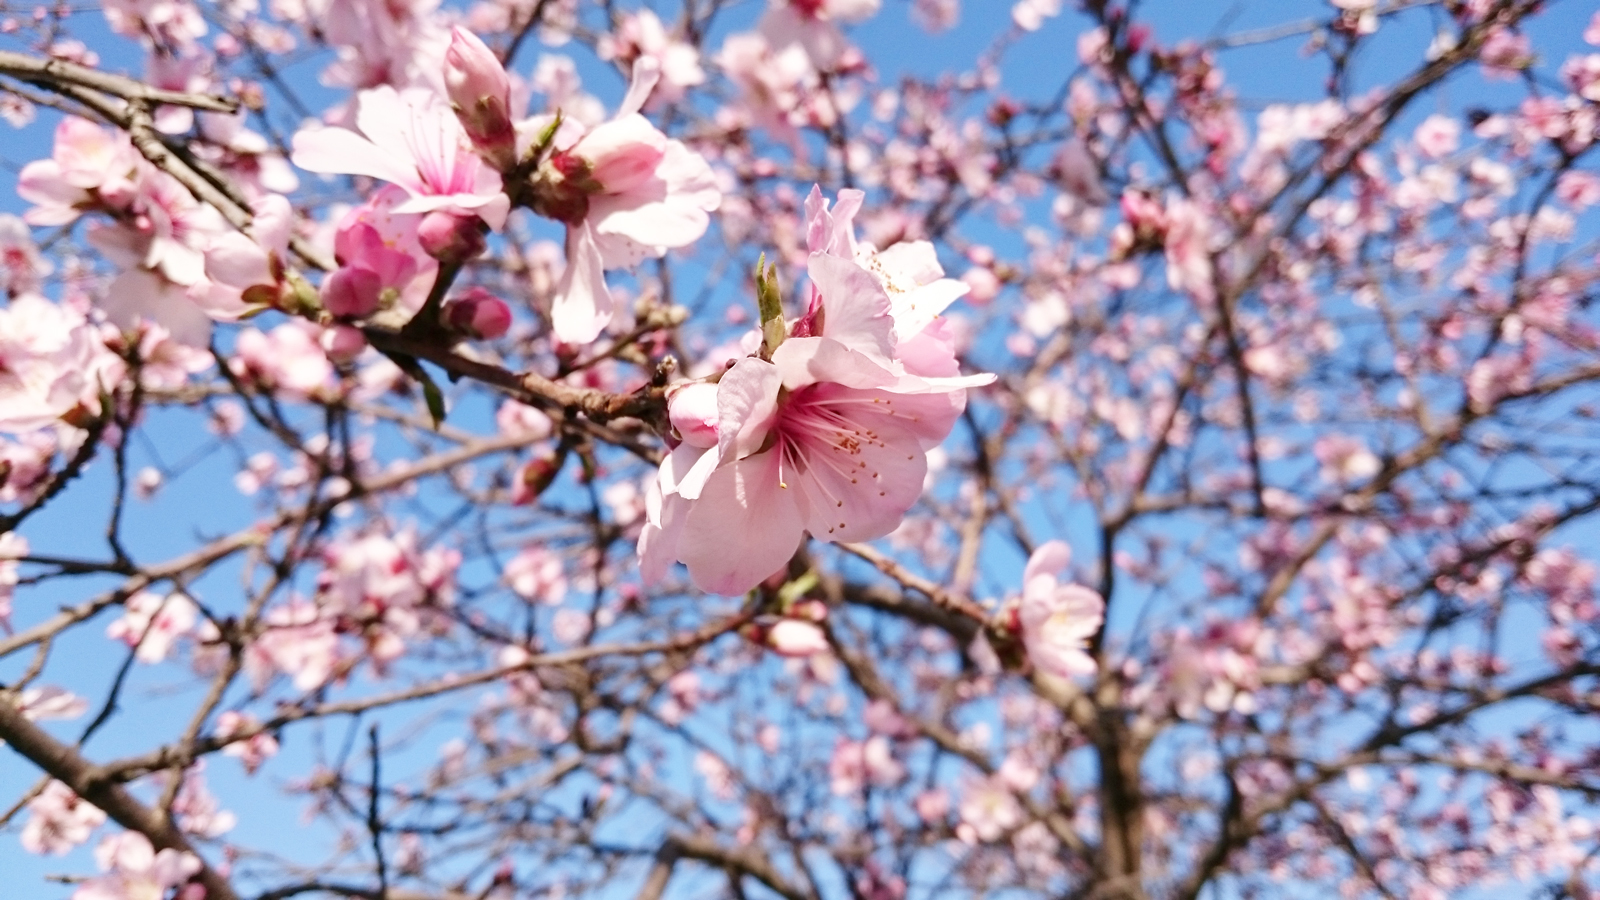 Are You Ready For Travel Japan The Season Of Cherry Blossom Is